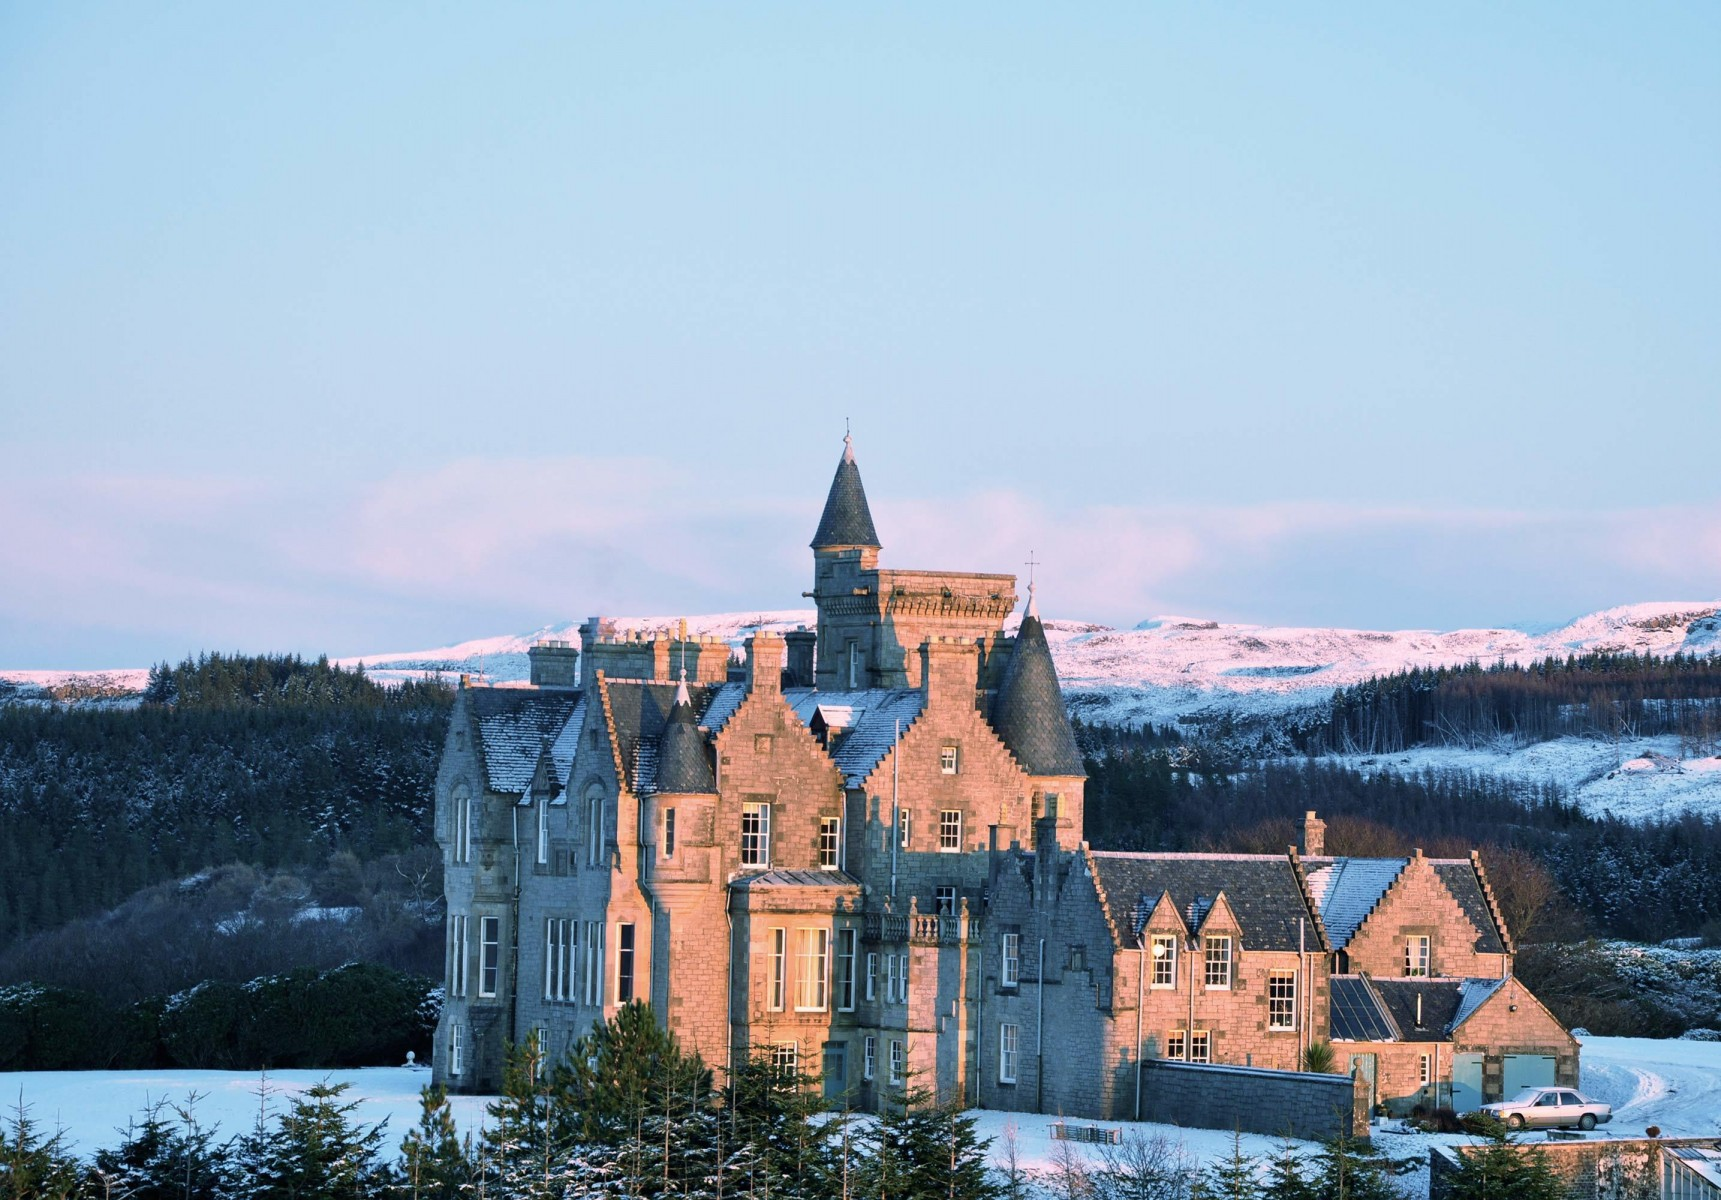 Glengorm Castle, Scotland. Credit Booking.com